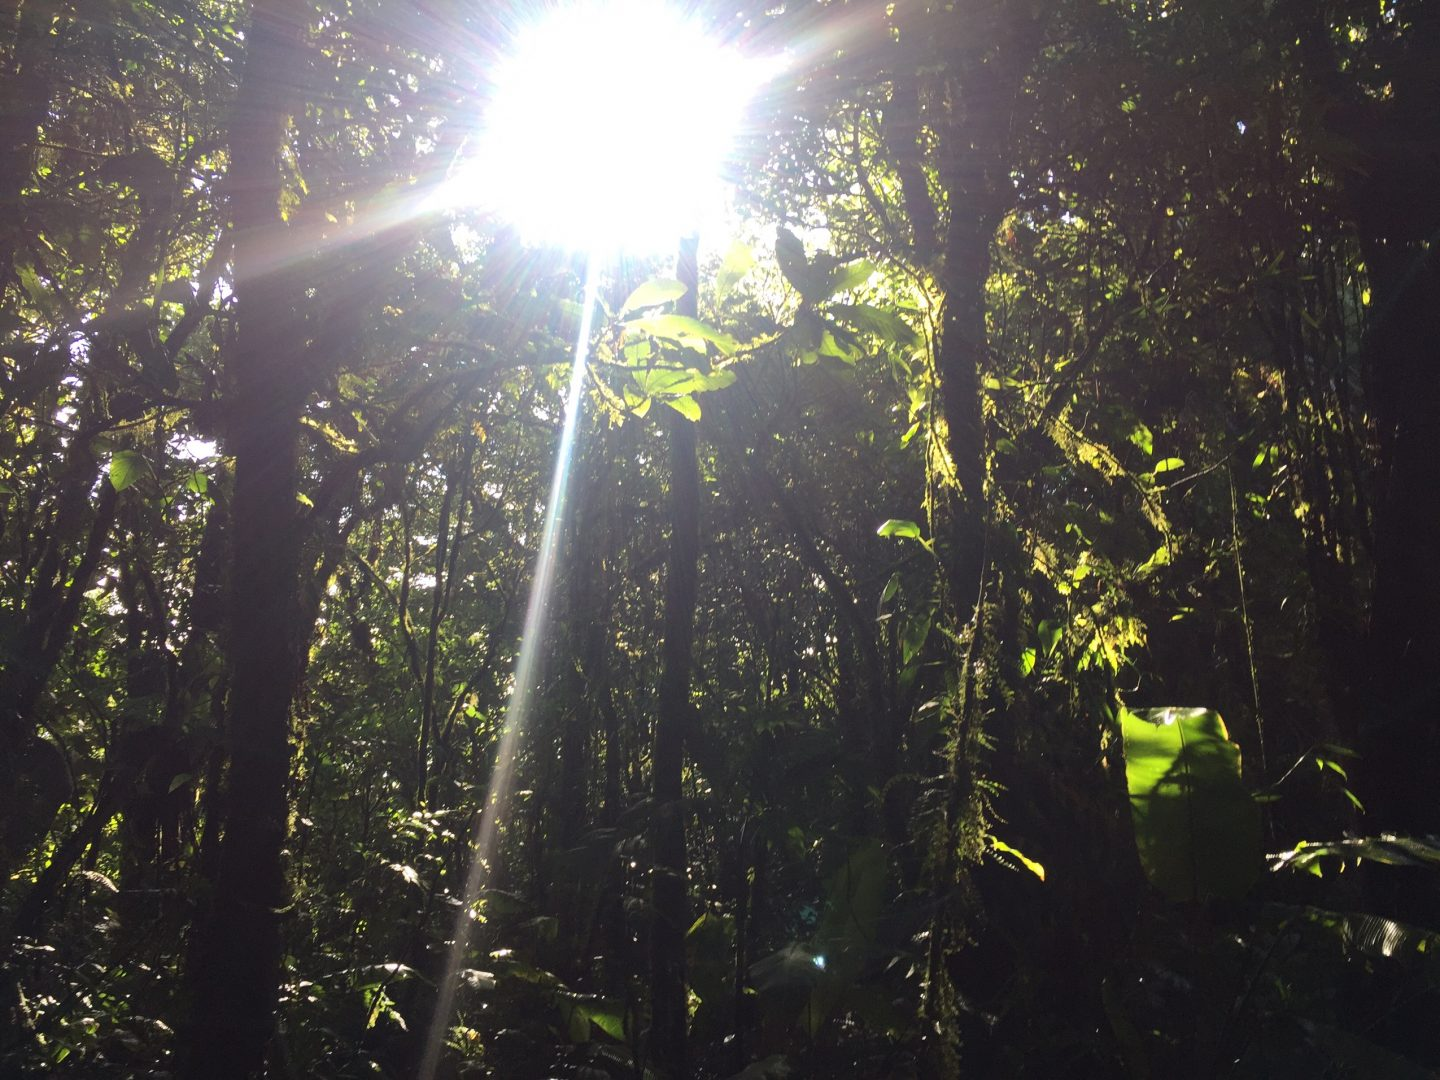 The rainforest of Central America